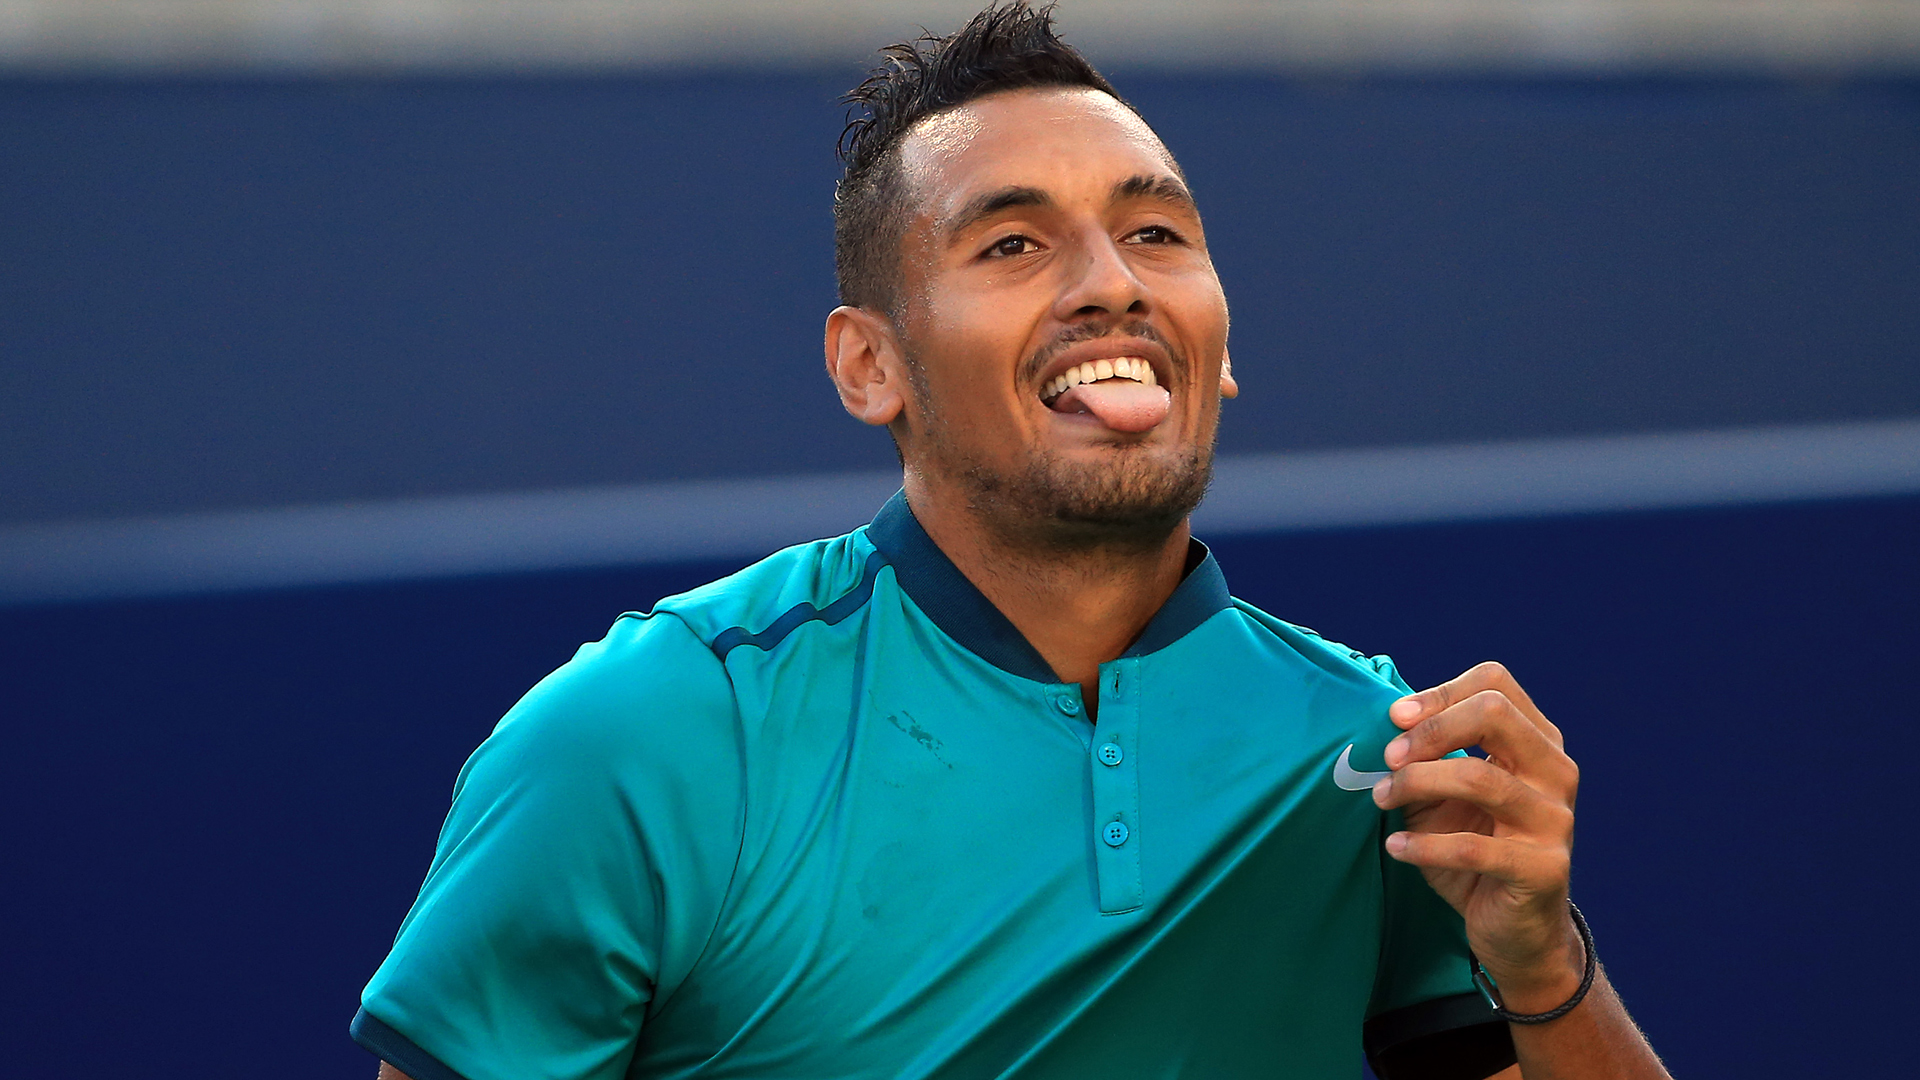 Nick Kyrgios Wallpapers and Background Images   stmednet 1920x1080